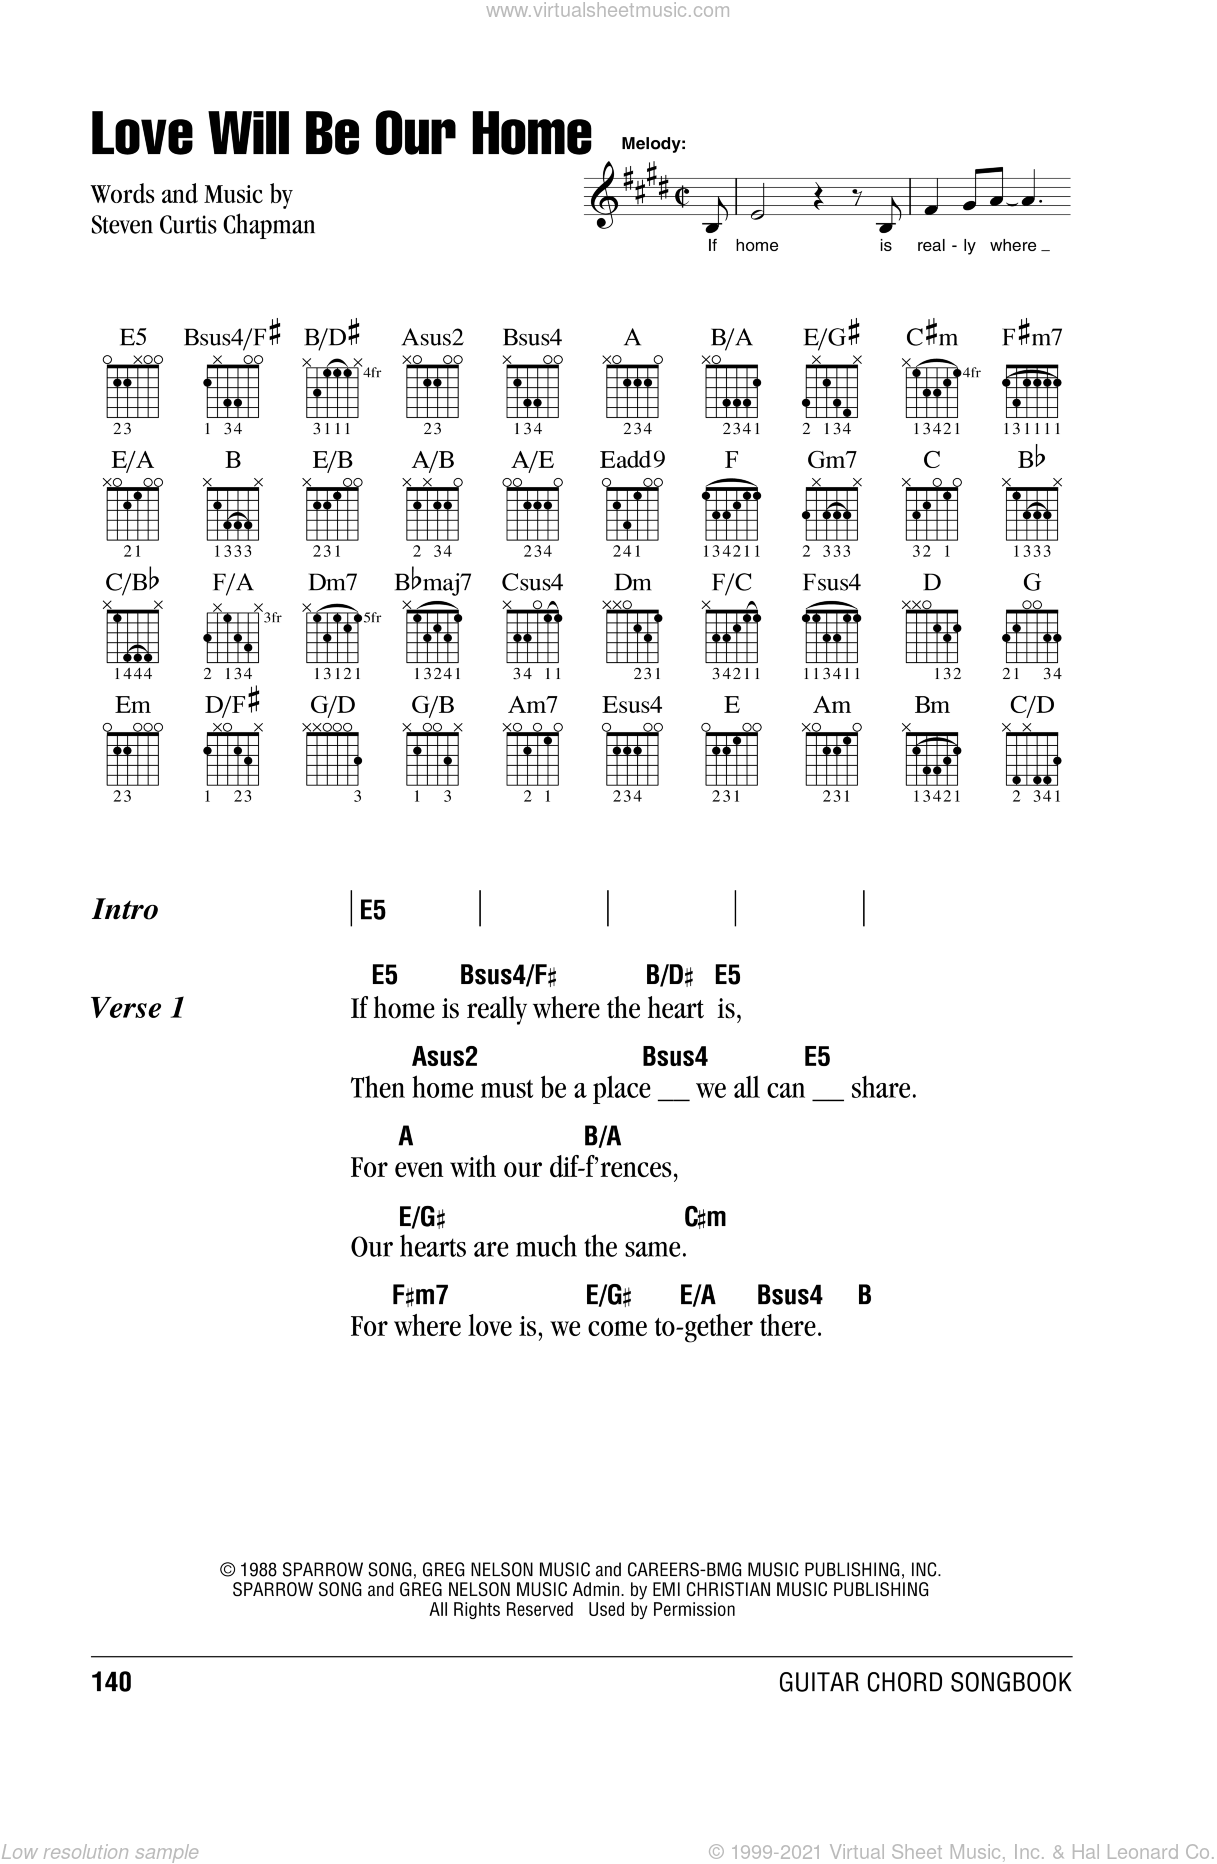 Patty - Love Will Be Our Home sheet music for guitar (chords)